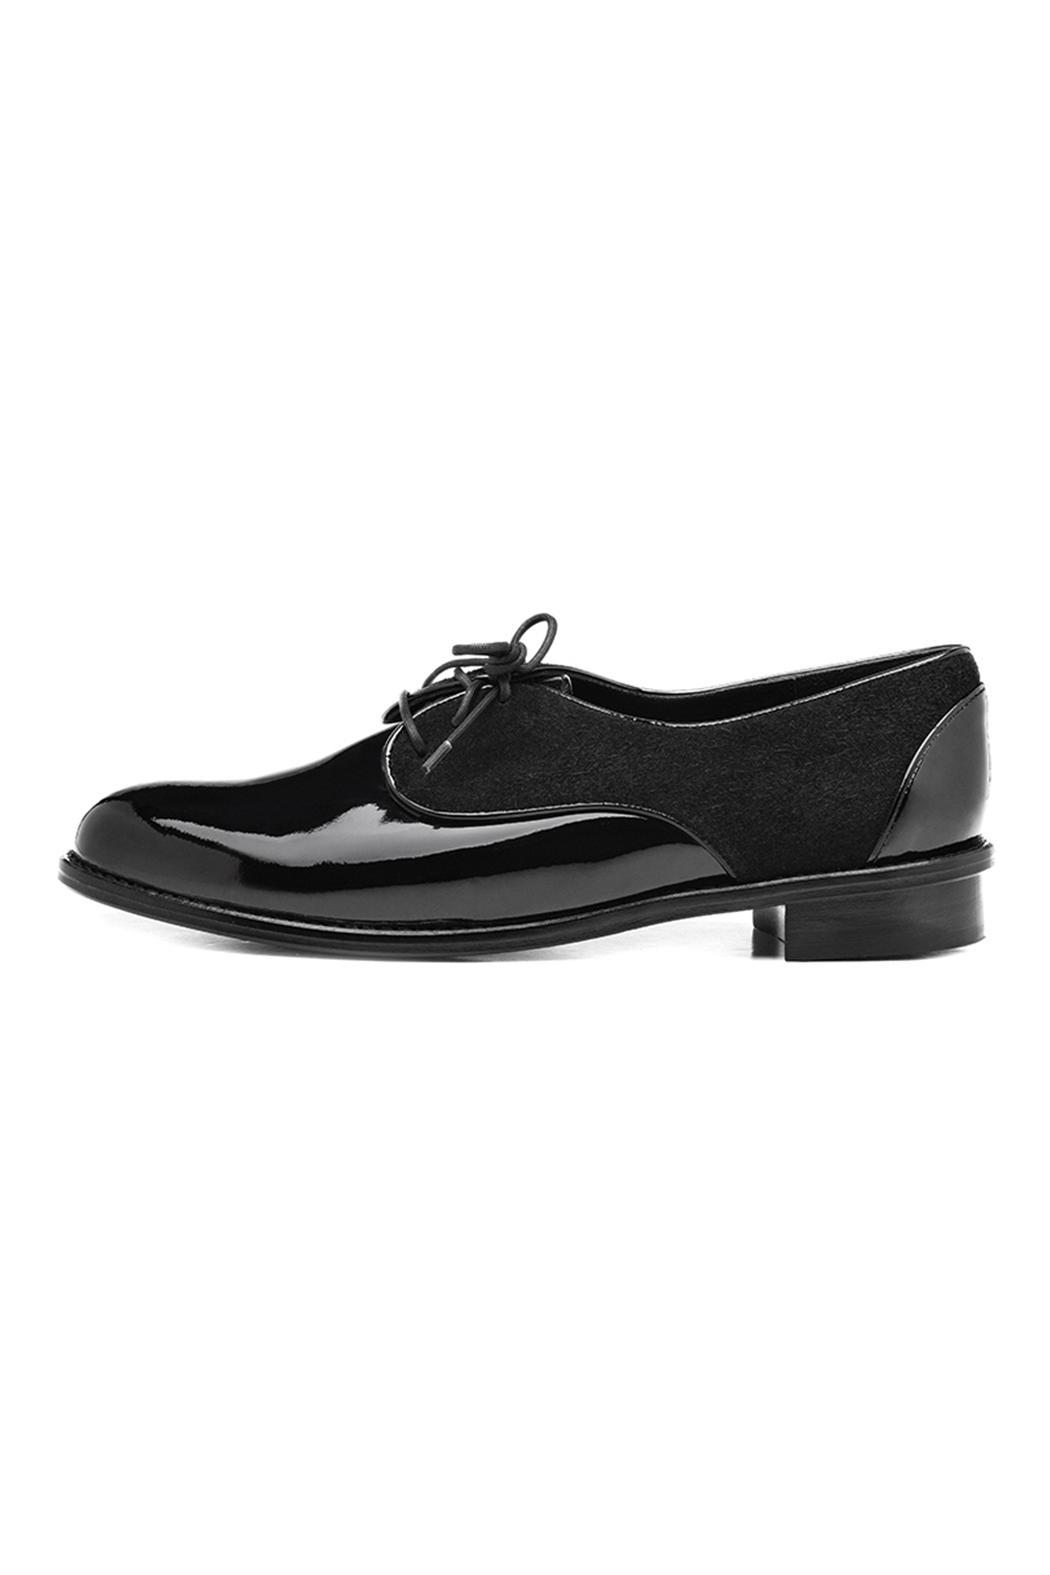 Minhk Nicole Patent Leather Shoes - Front Cropped Image